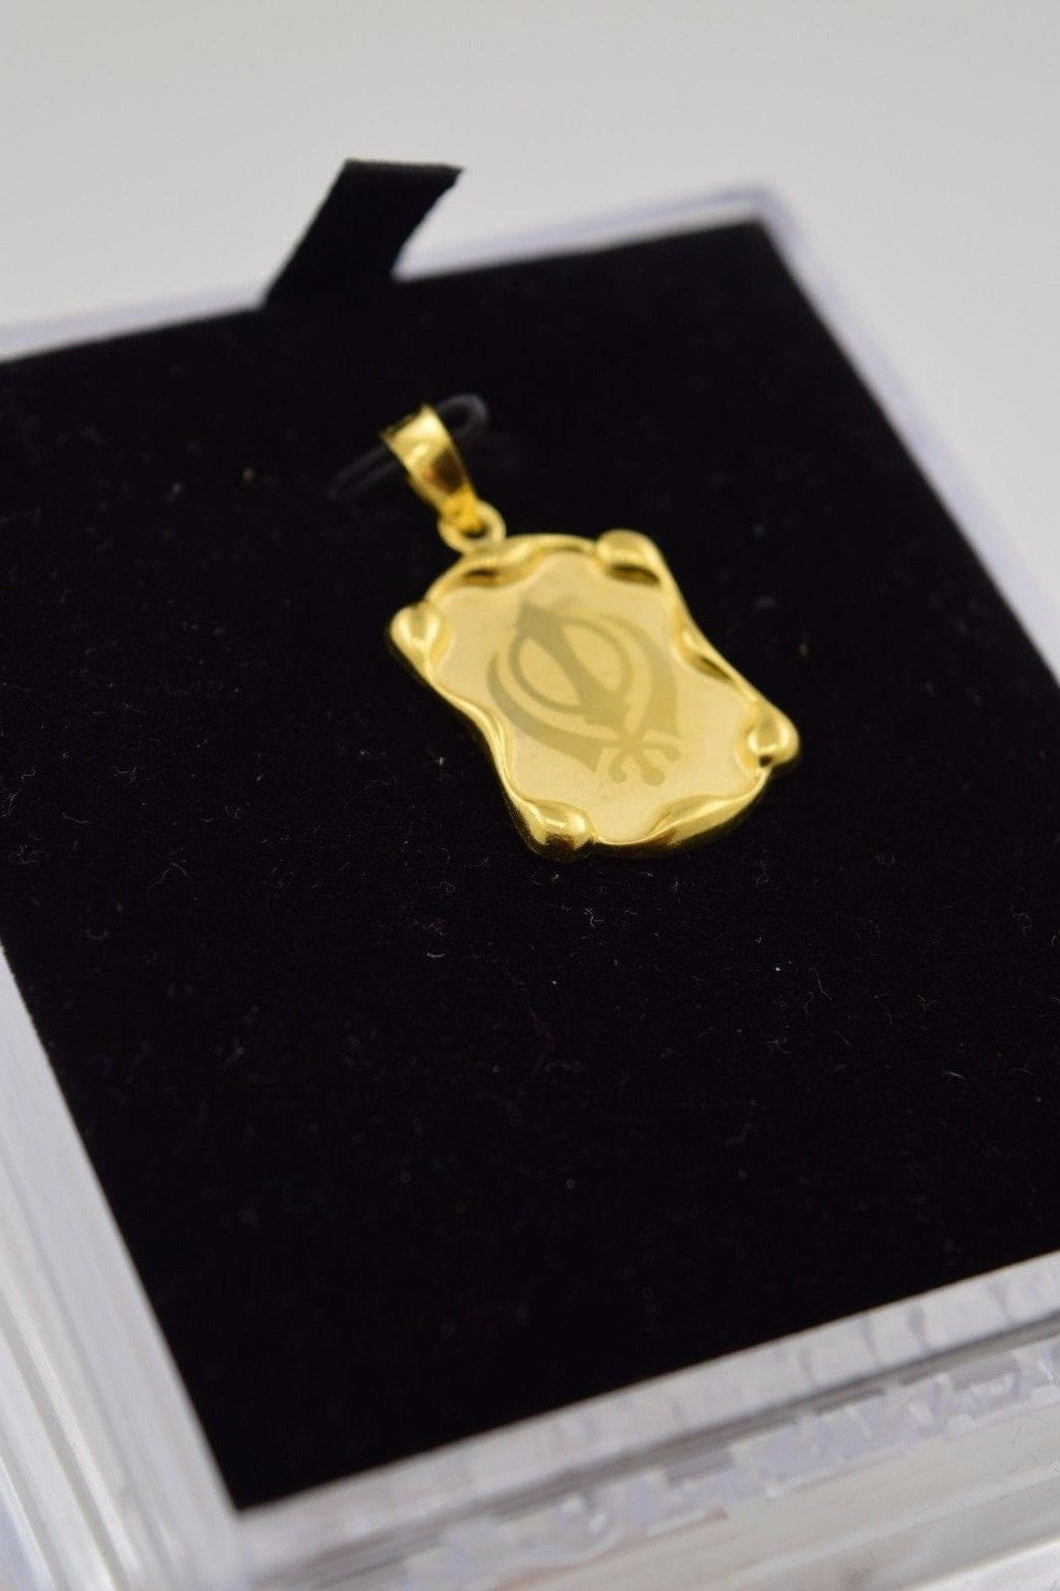 22k 22ct Solid Gold Sikh Religious pendant charm locket p282 - Royal Dubai Jewellers